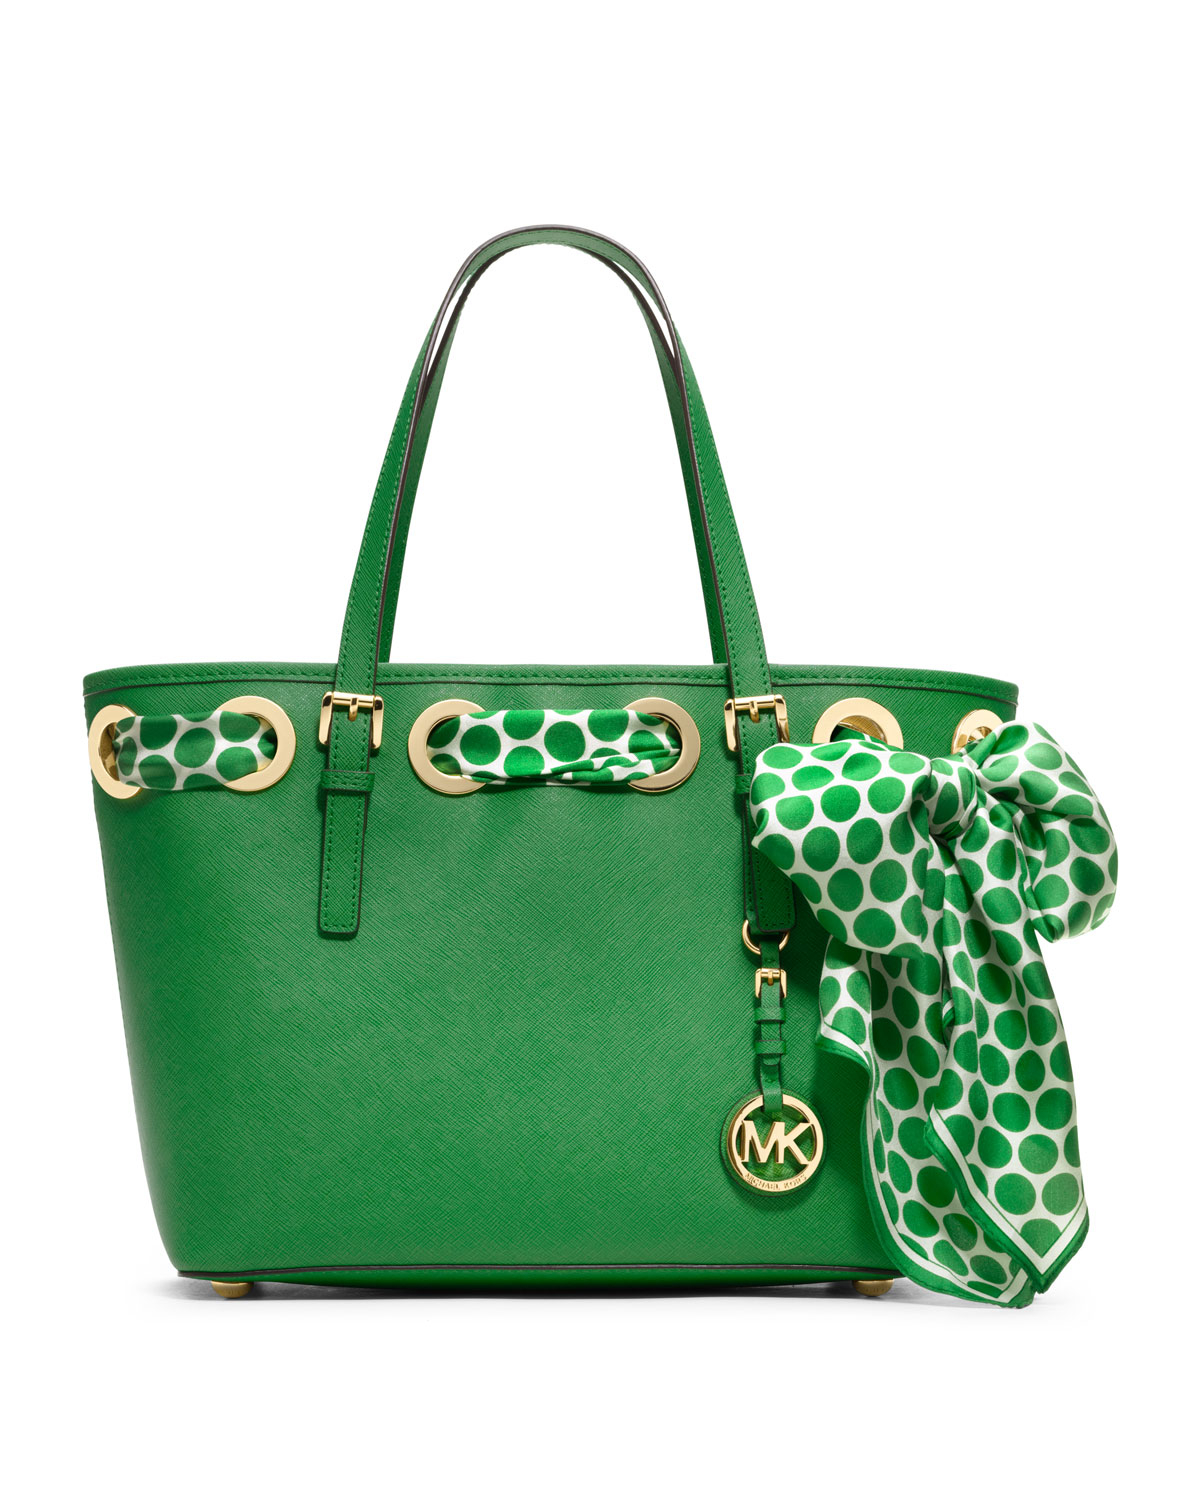 lyst michael kors small jet set scarf tote in green. Black Bedroom Furniture Sets. Home Design Ideas